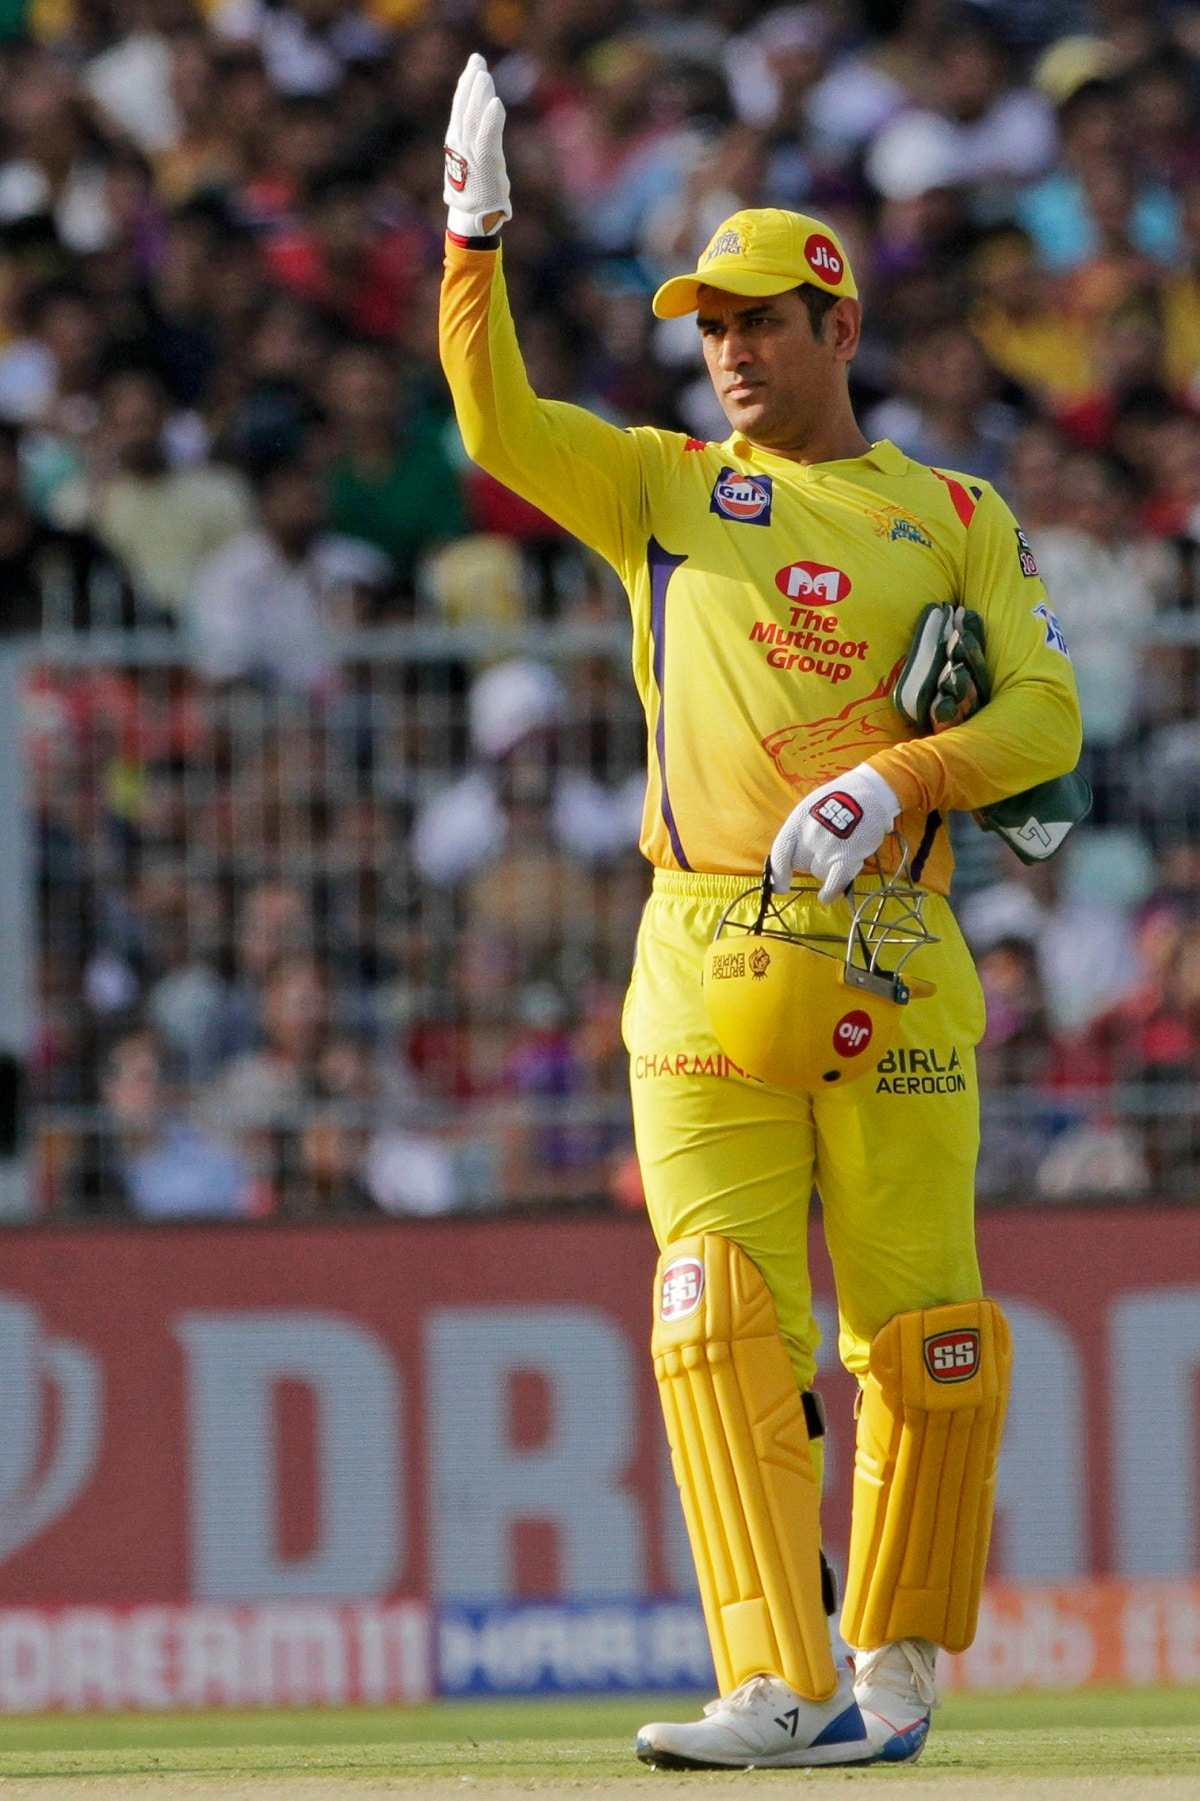 Chennai Super Kings' Mahendra Singh Dhoni gestures to his fielders during the VIVO IPL cricket T20 match against Kolkata Knight Riders in Kolkata. (AP Photo/Bikas Das)